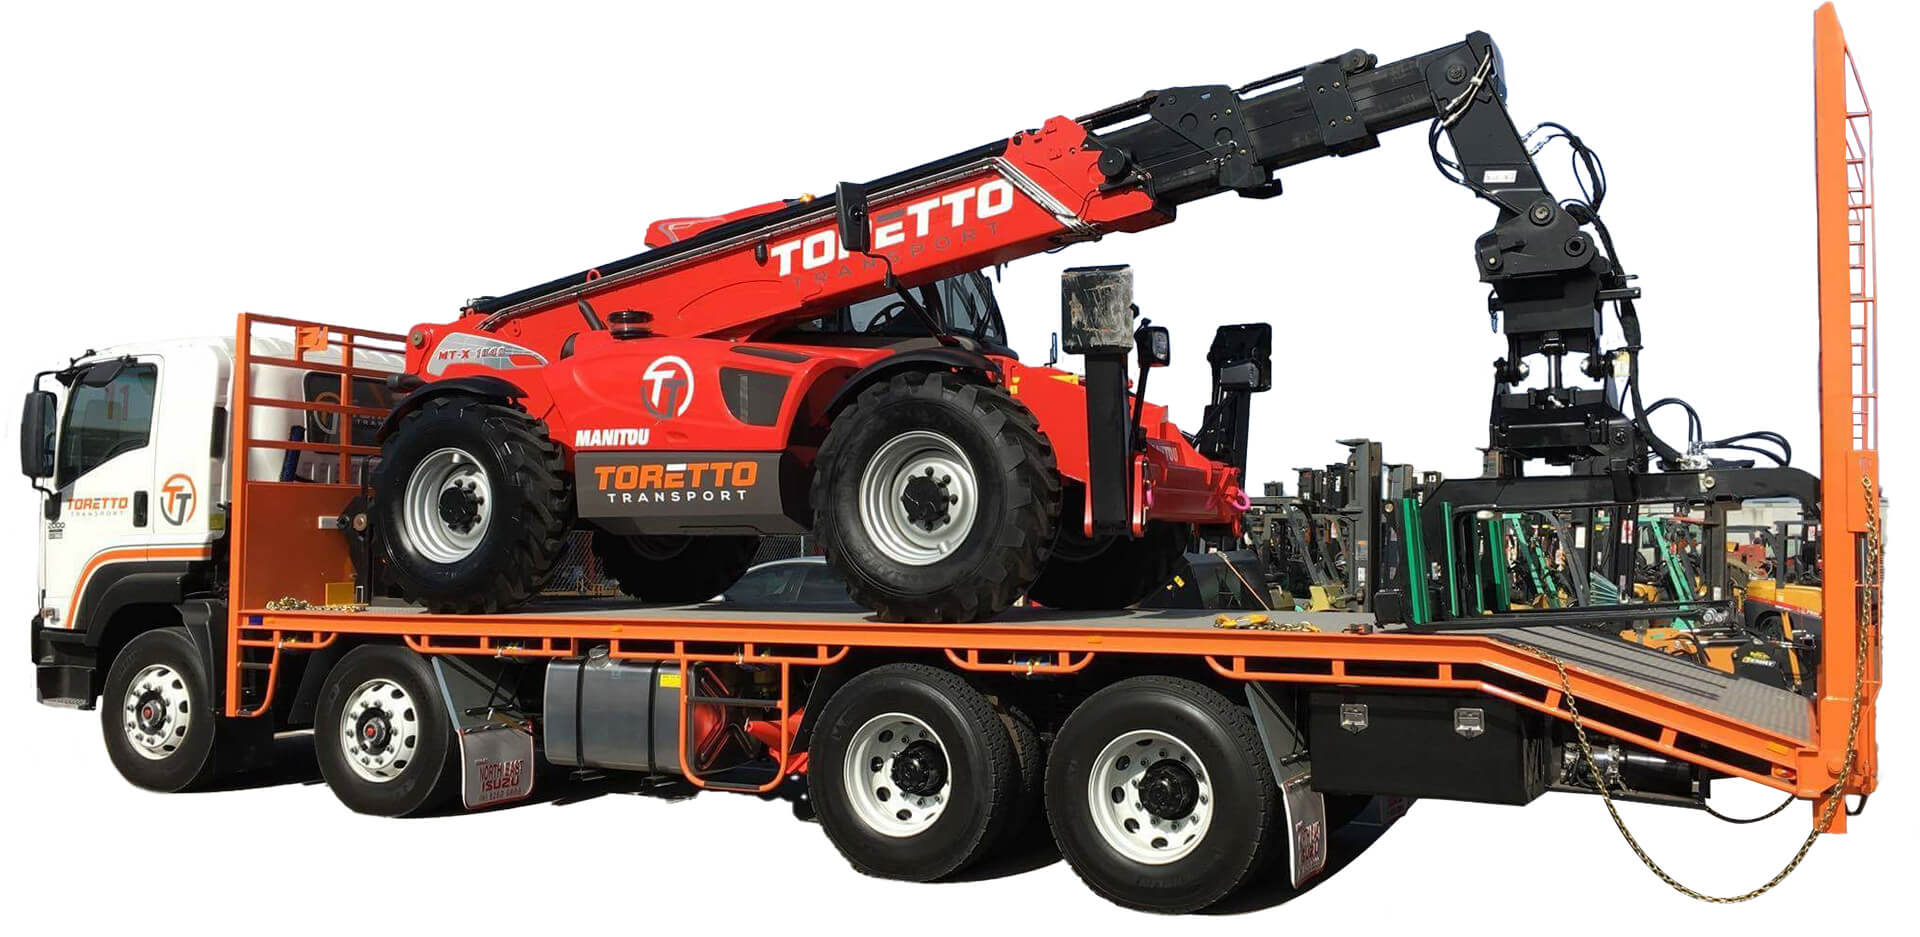 Telehandler packed down on the back of Toretto Truck.